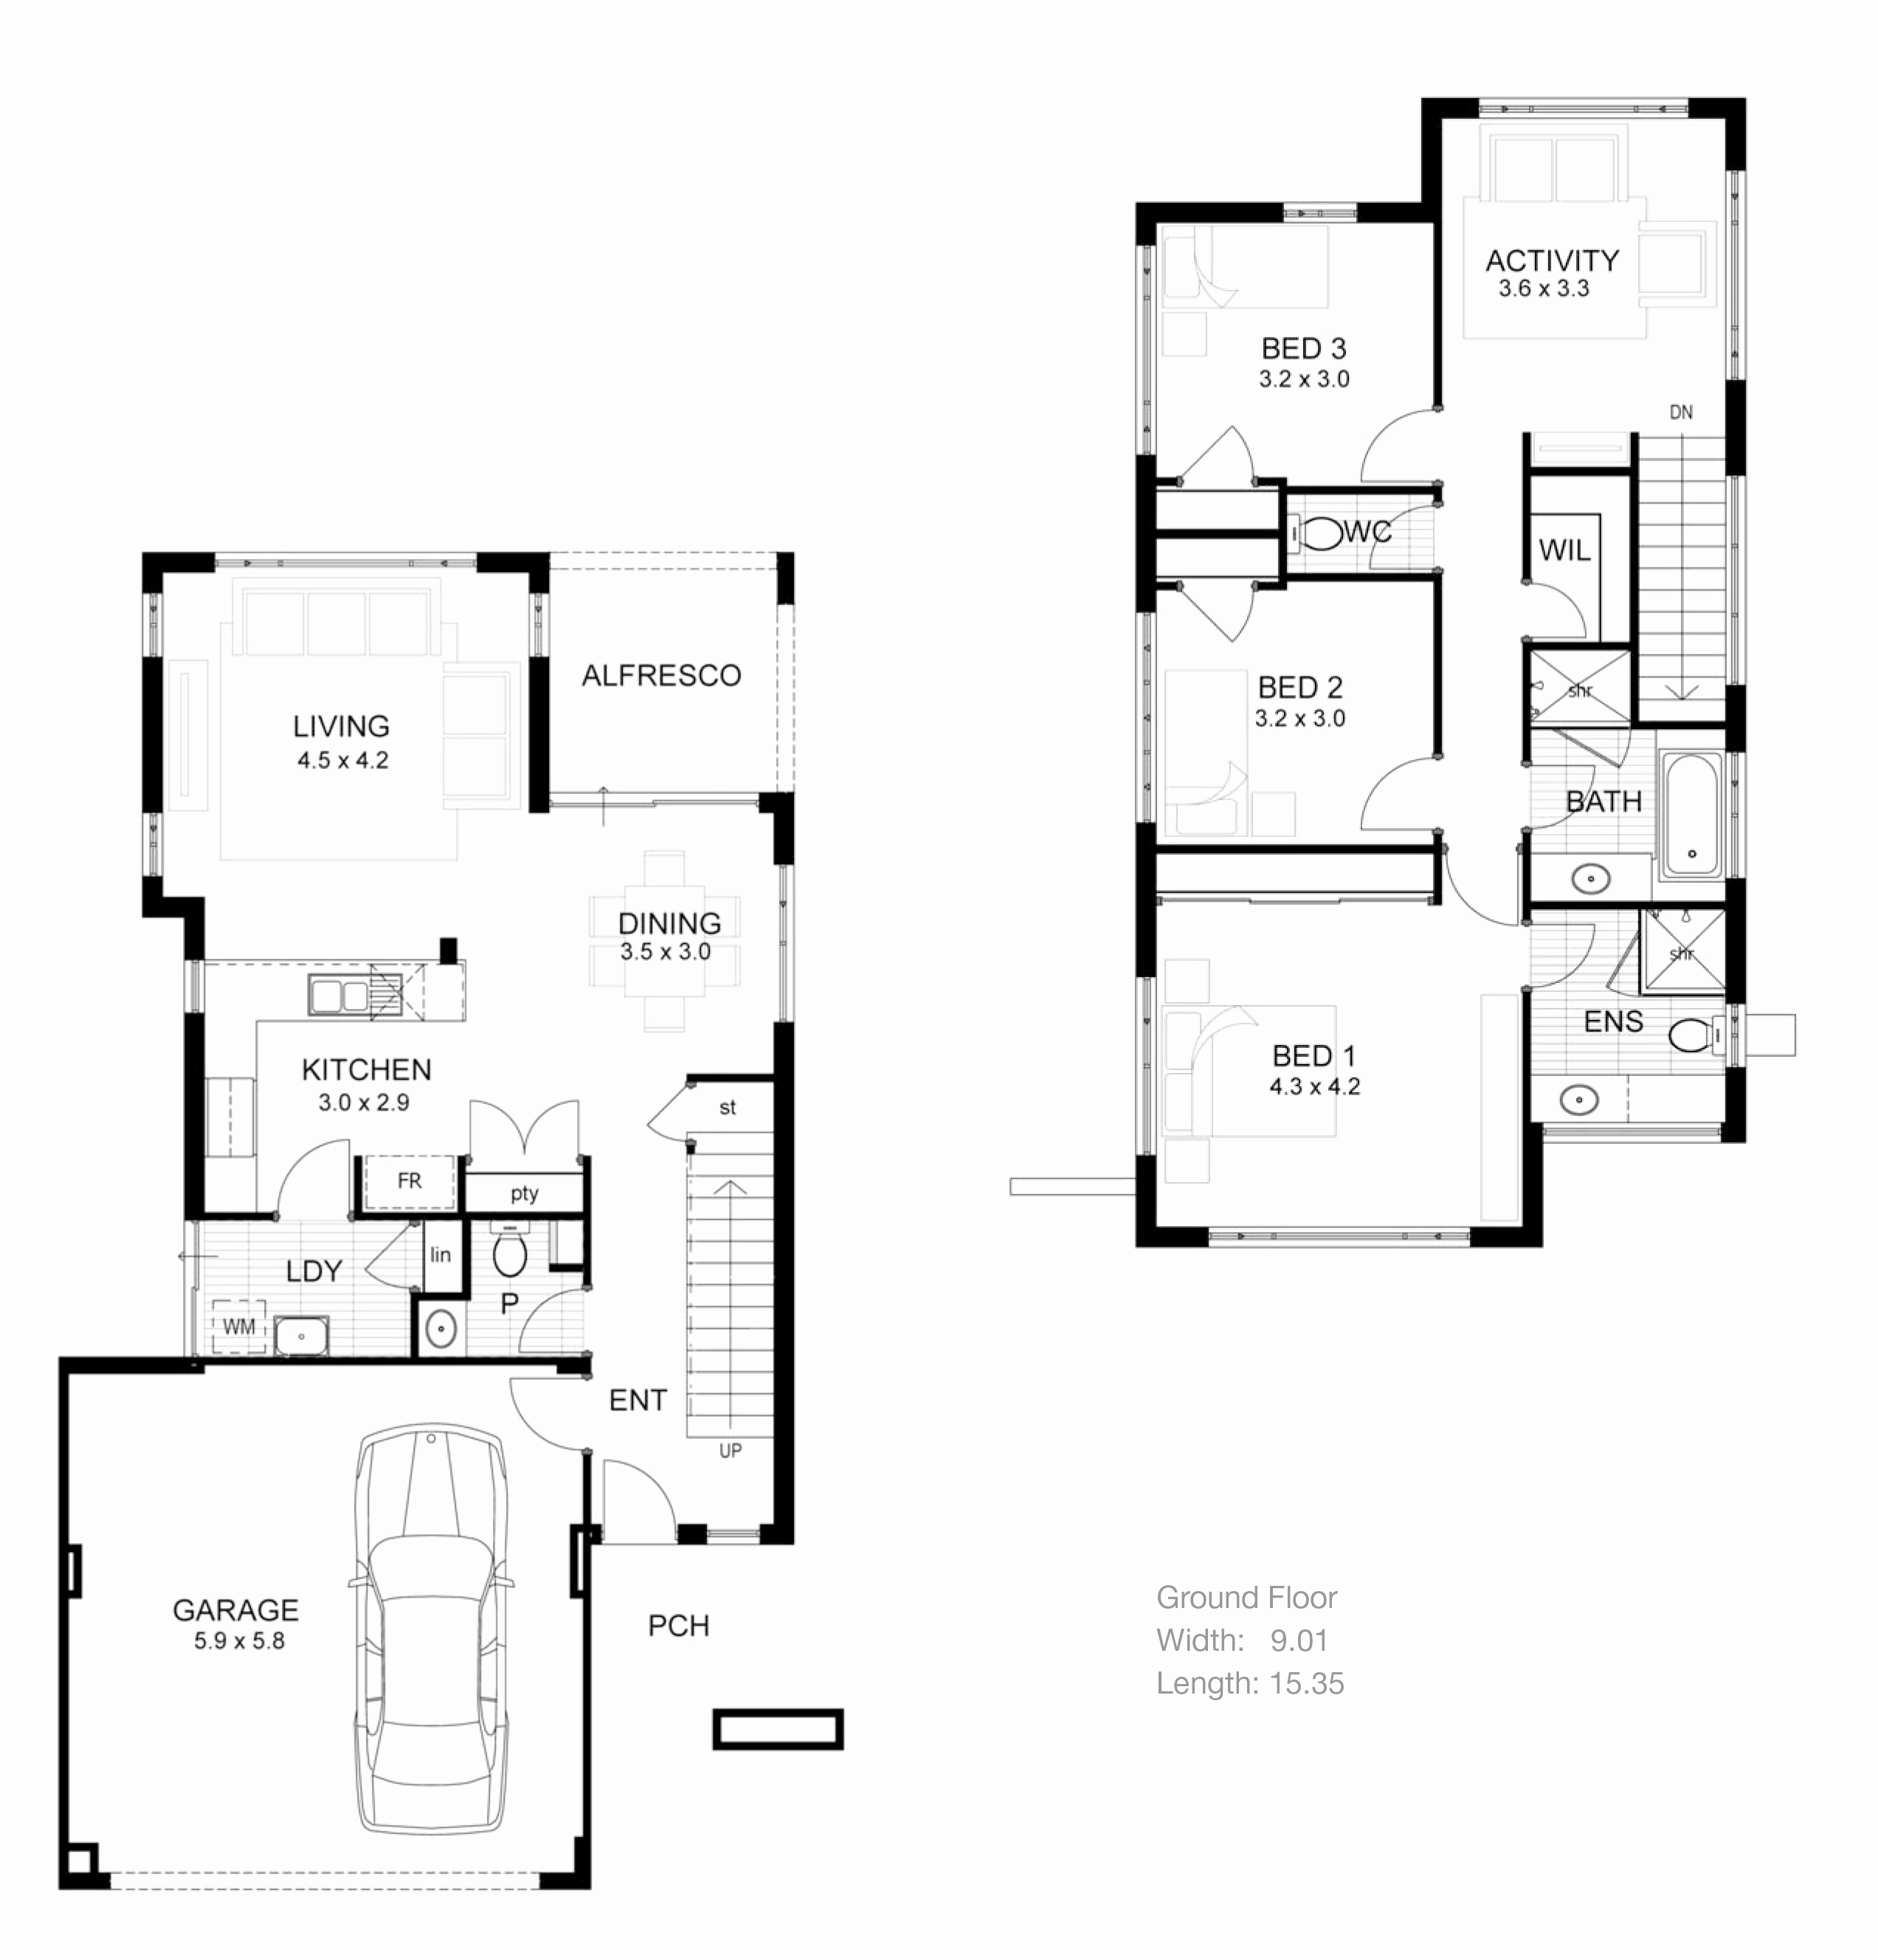 Modern Best 5 Bedroom House Plan Inspirational Bedroom Plan Small House with regard to Unique Small 5 Bedroom House Plans